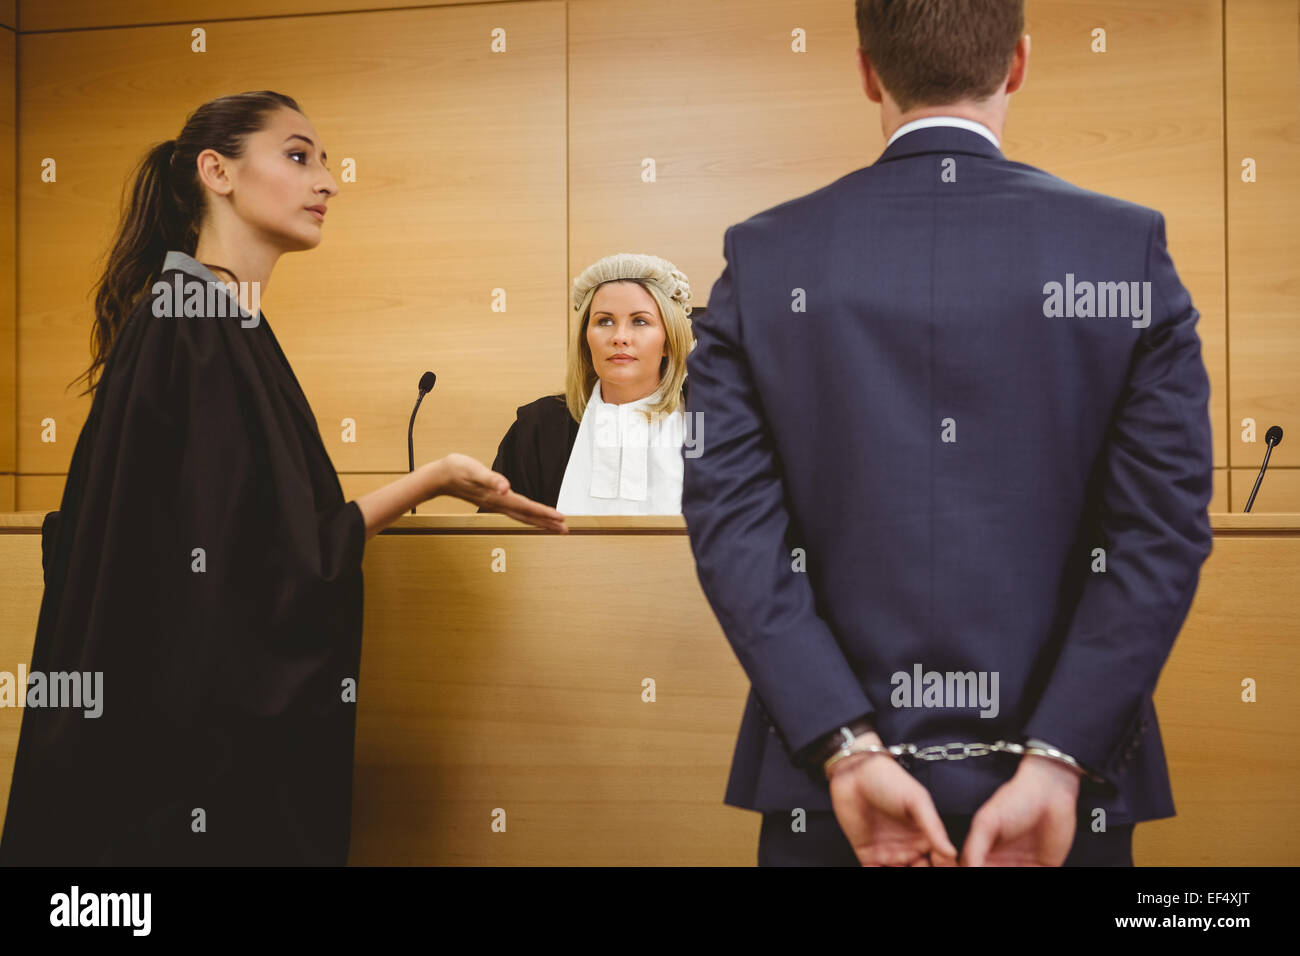 Lawyer talking with the criminal in handcuffs - Stock Image